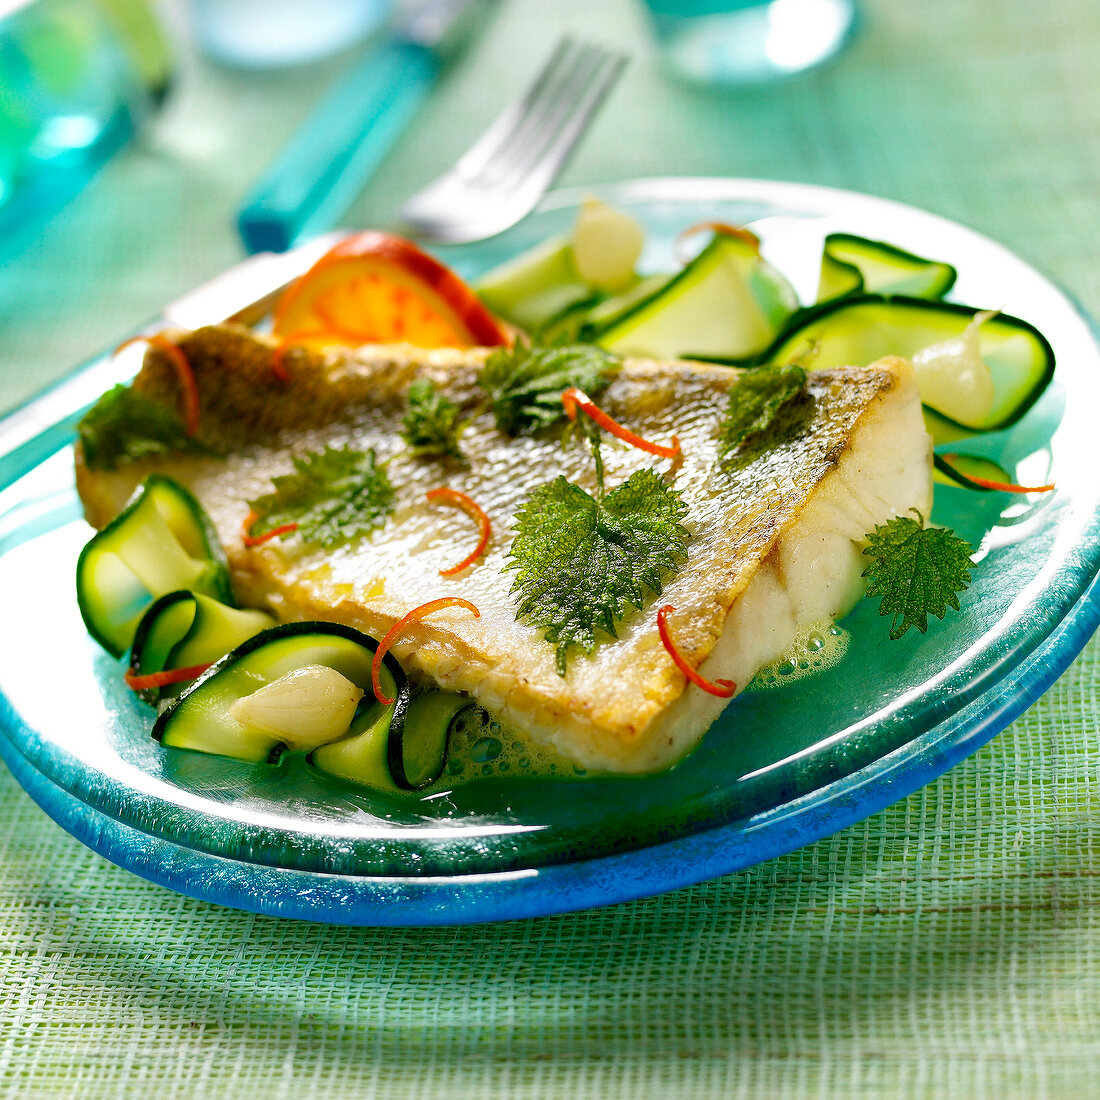 Pike-perch fillets with nettles